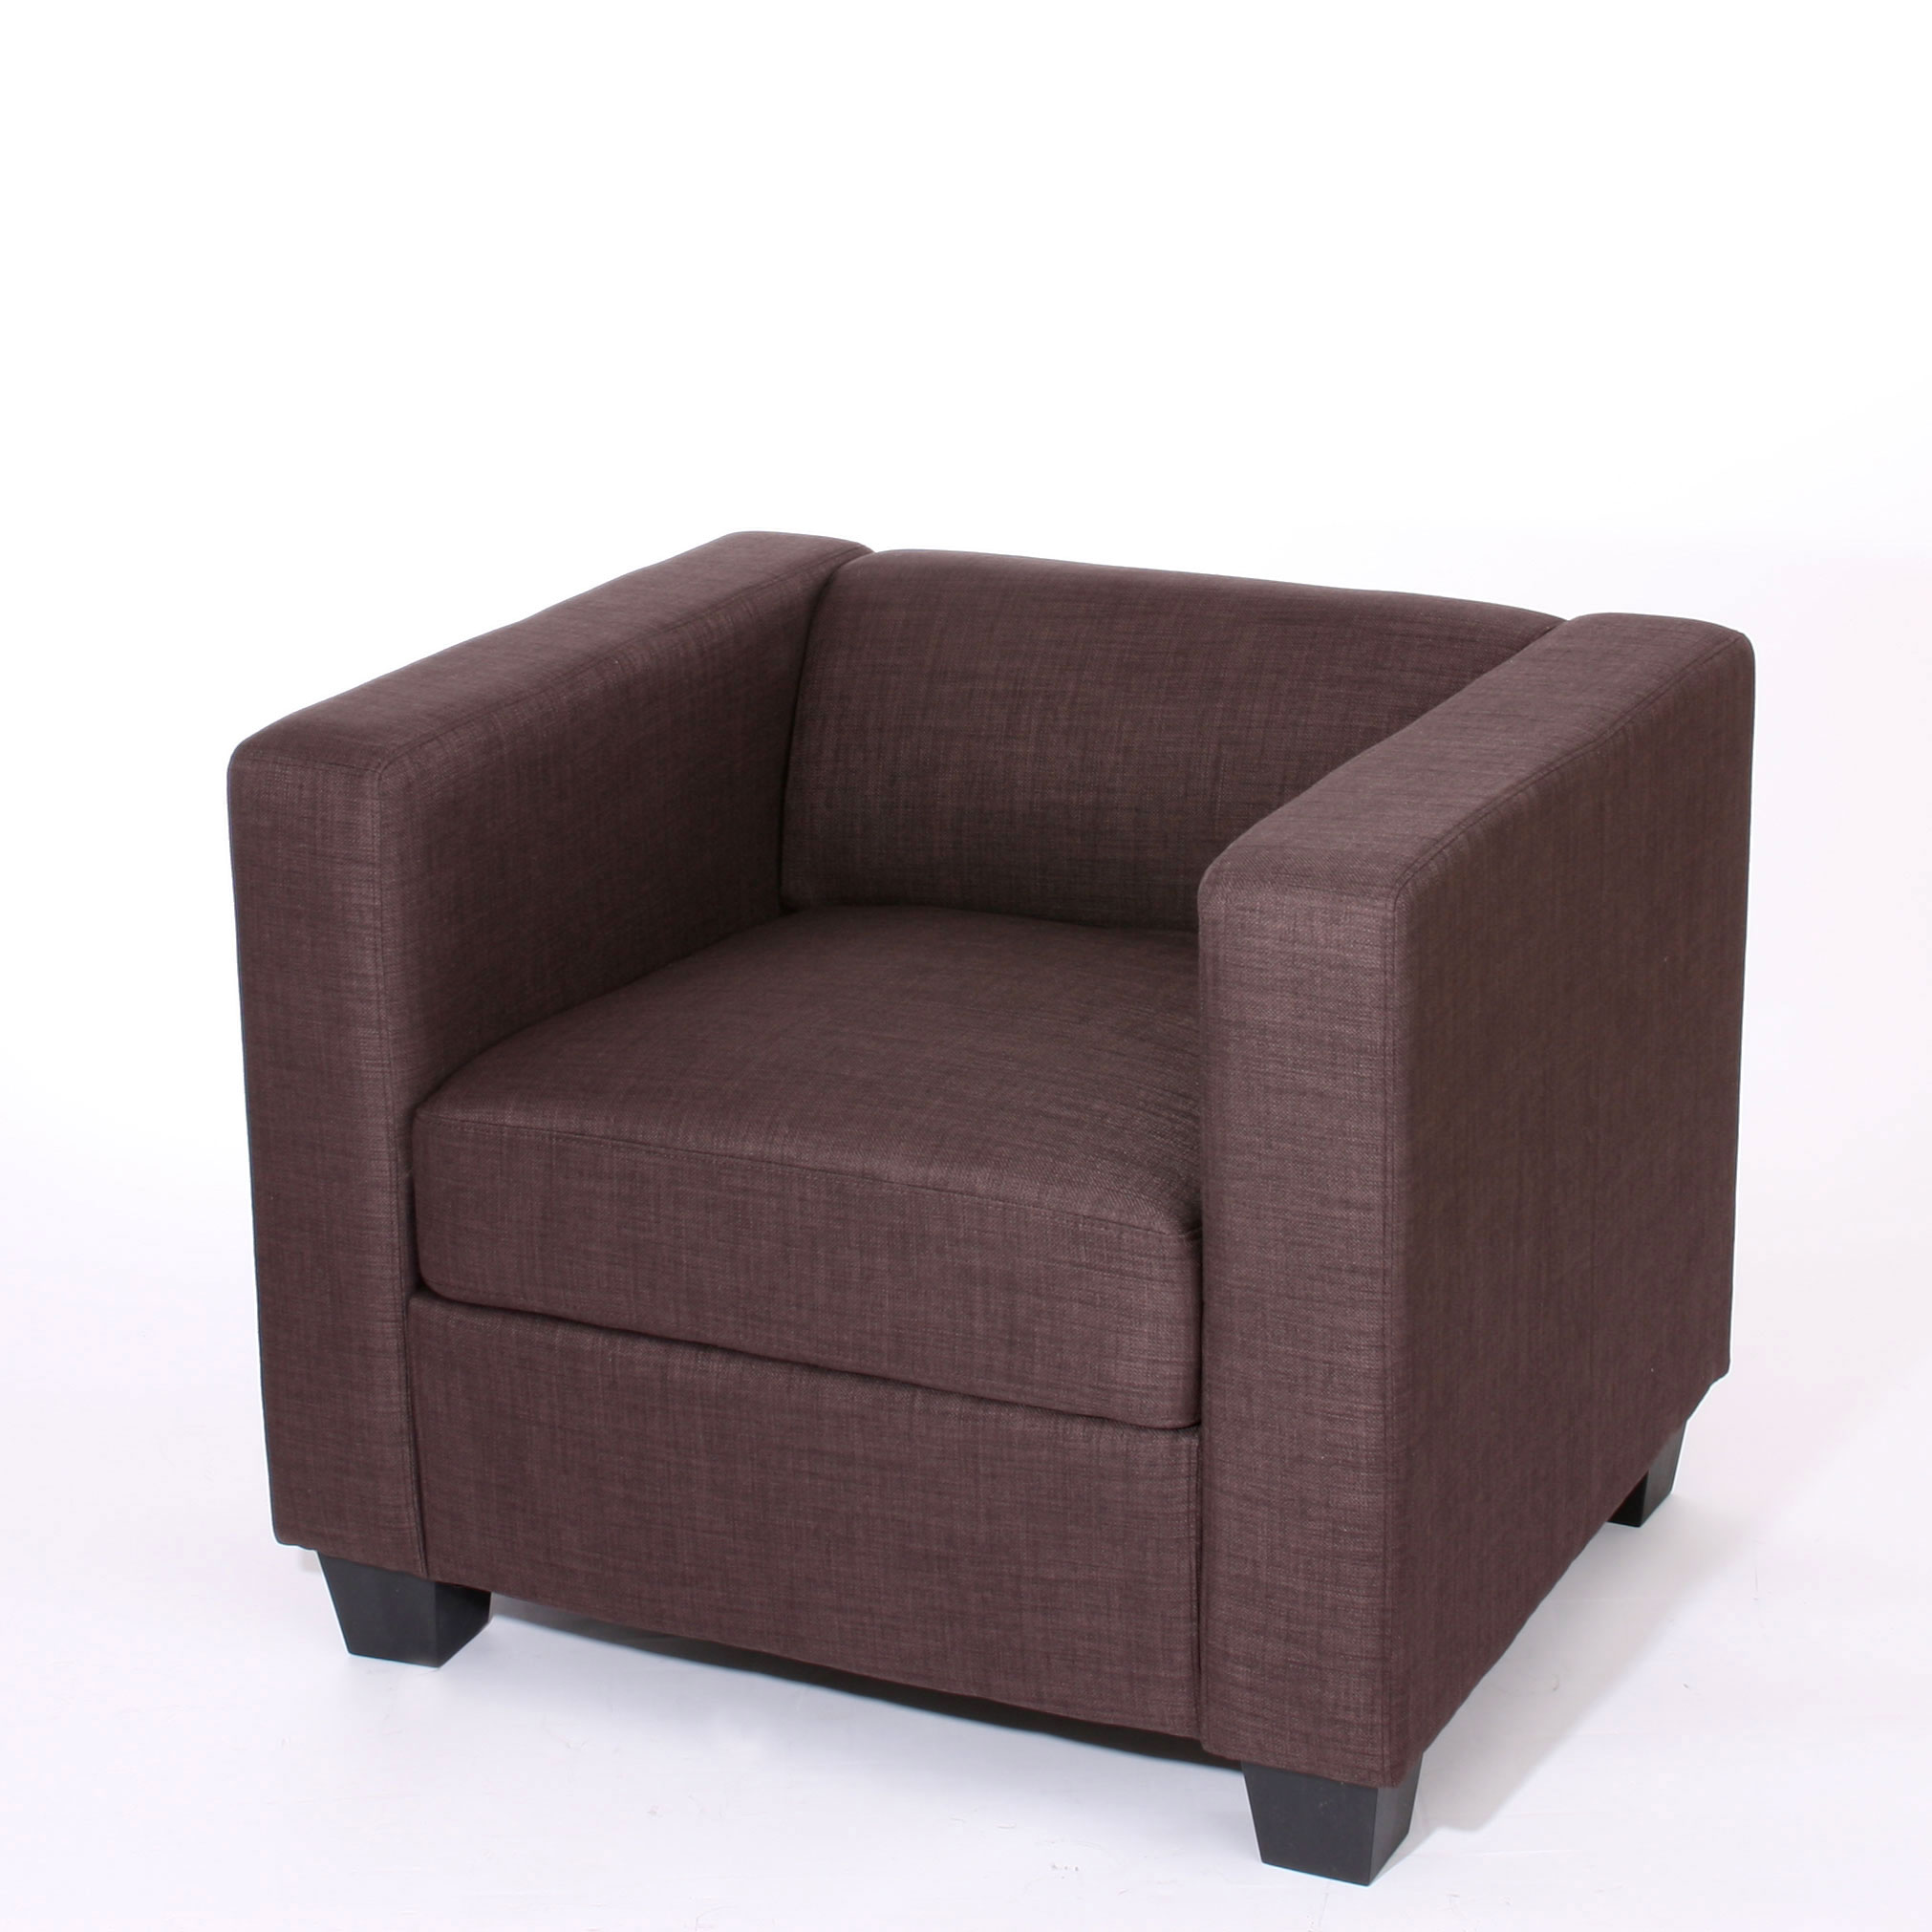 Sessel big lounge sessel u veneto big seatu gardino for Ohrensessel york big